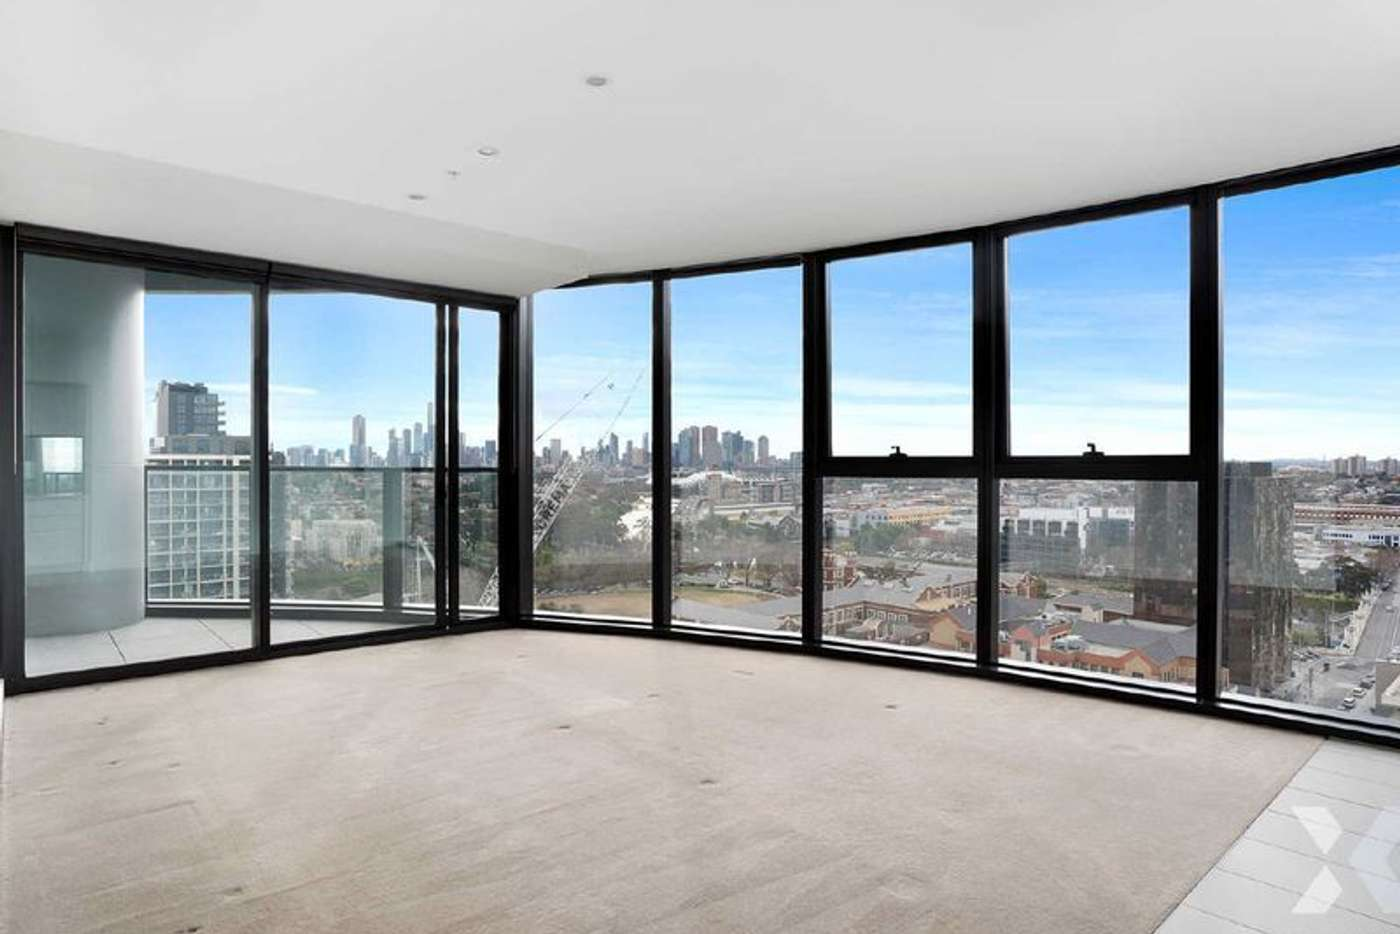 Main view of Homely apartment listing, 1207/35 Malcolm Street, South Yarra VIC 3141